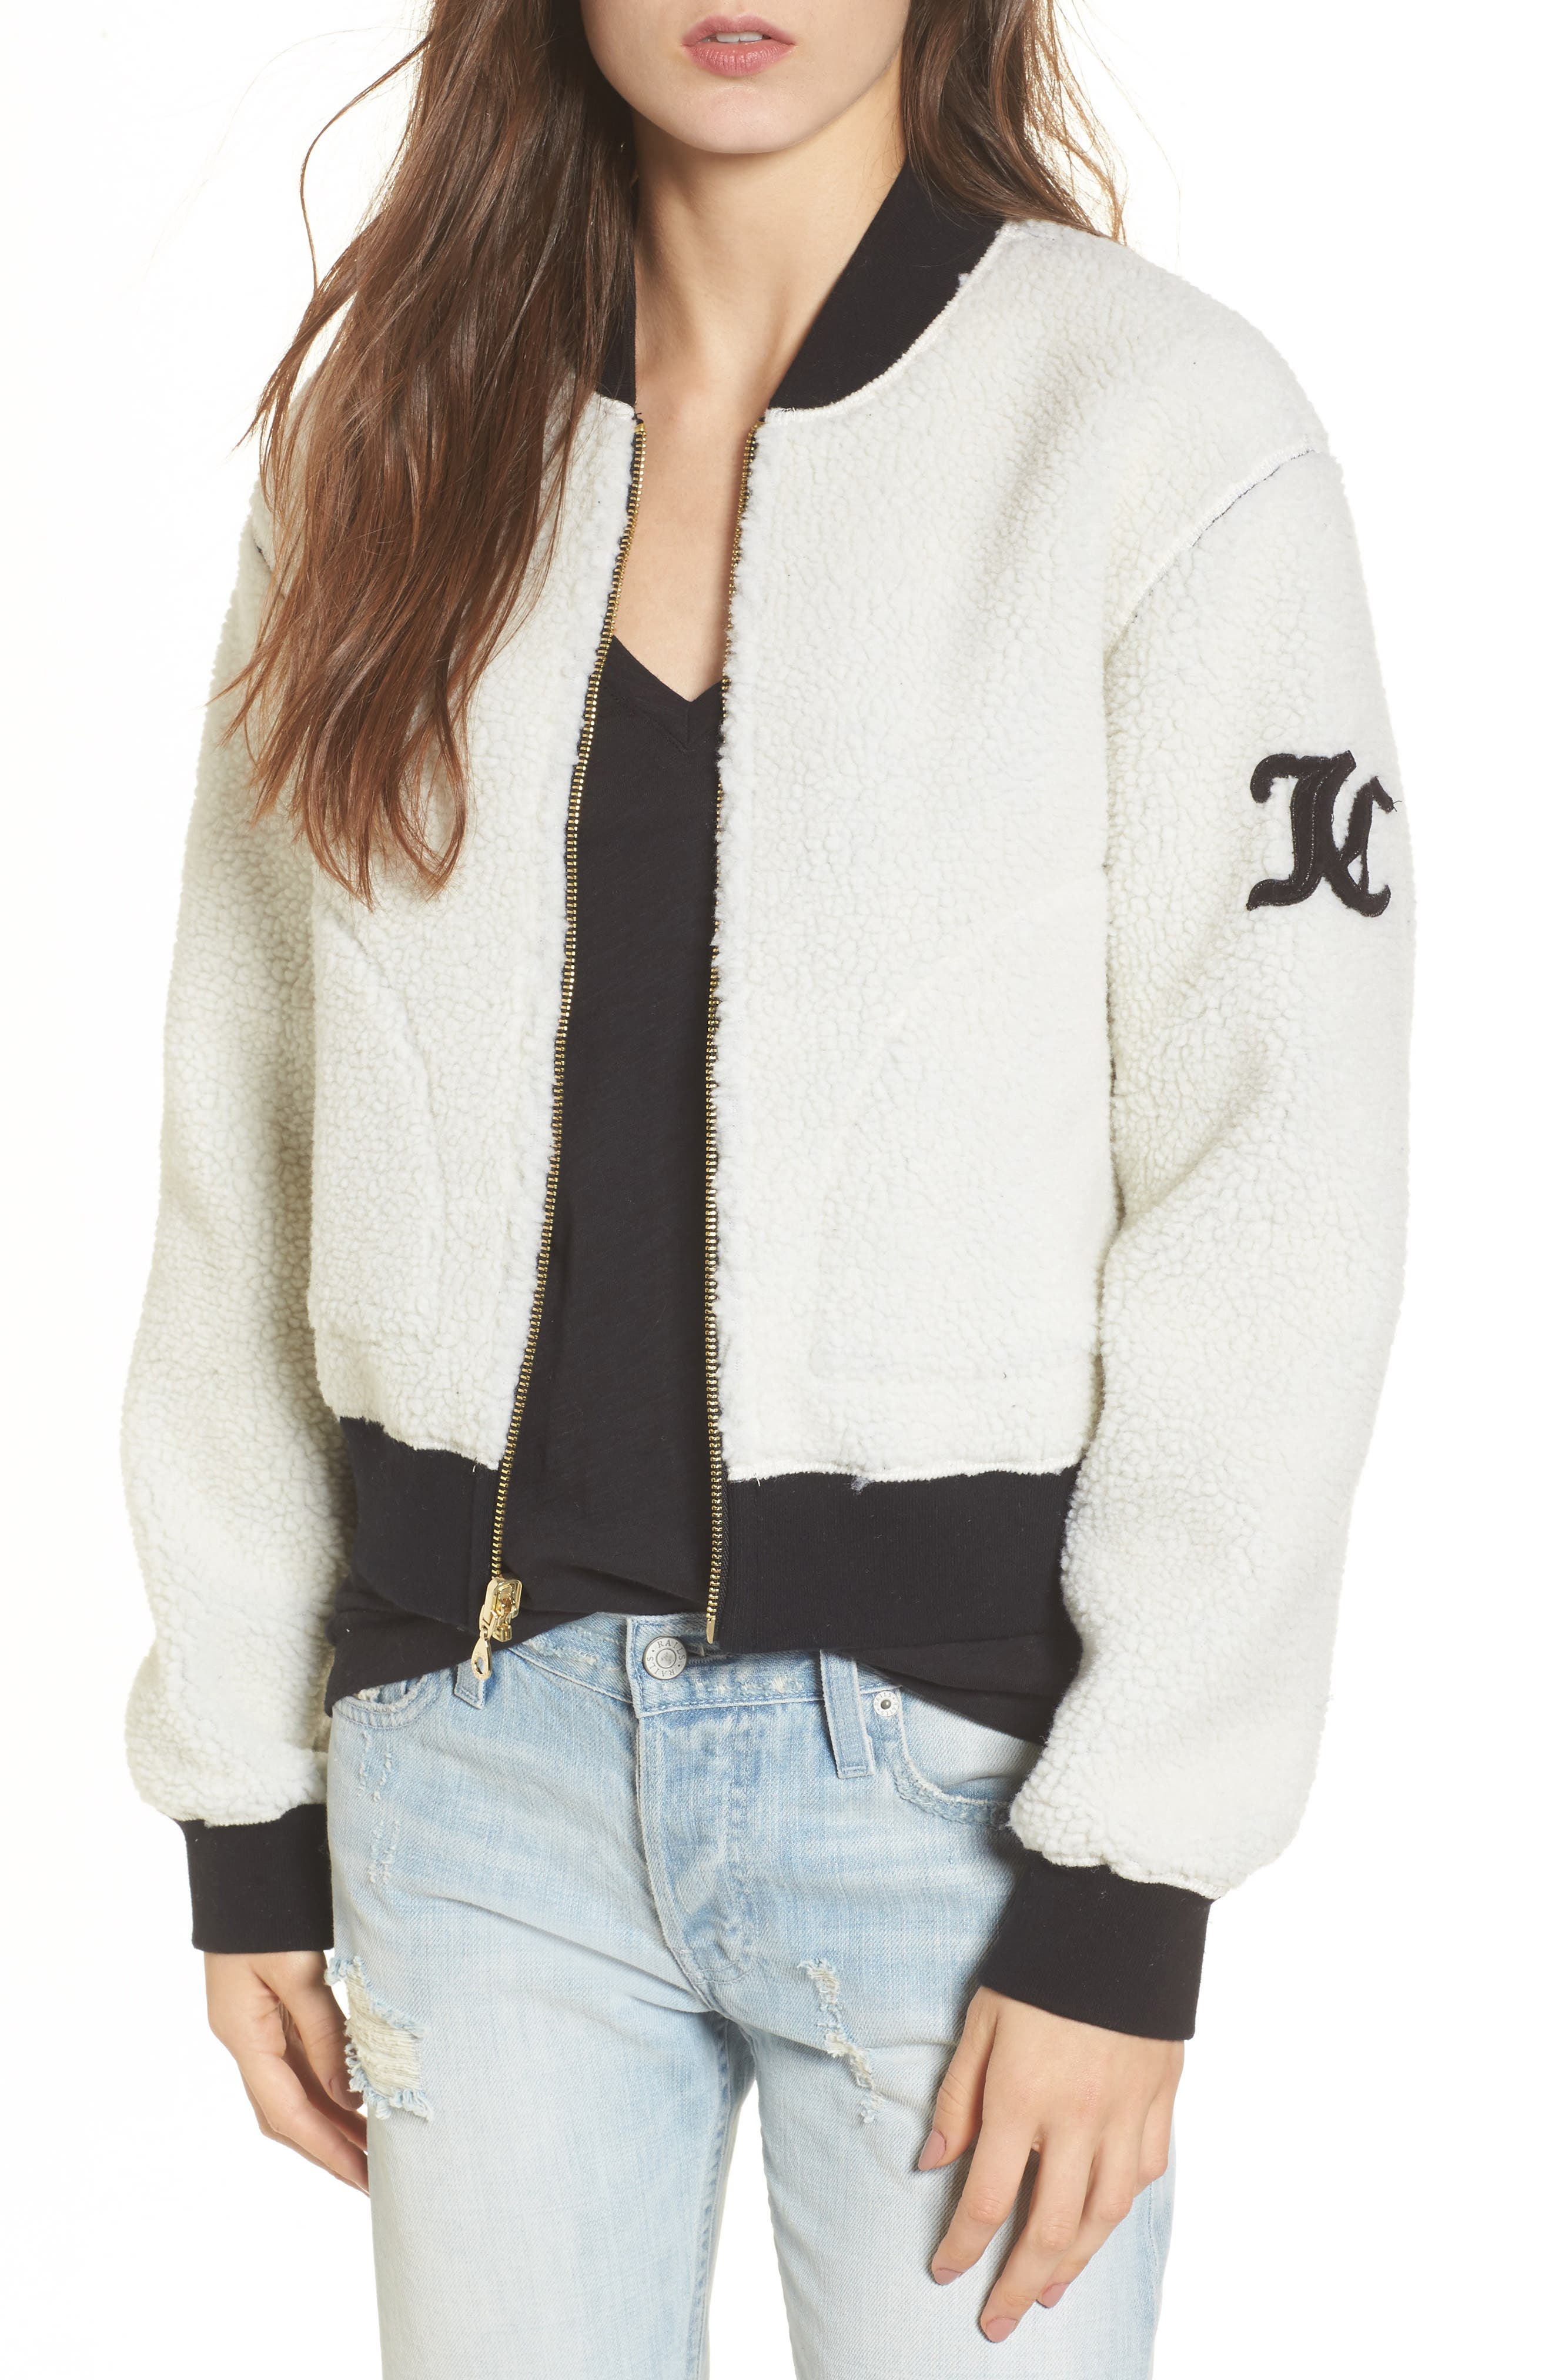 Main Image - Juicy Couture Reversible Track Jacket